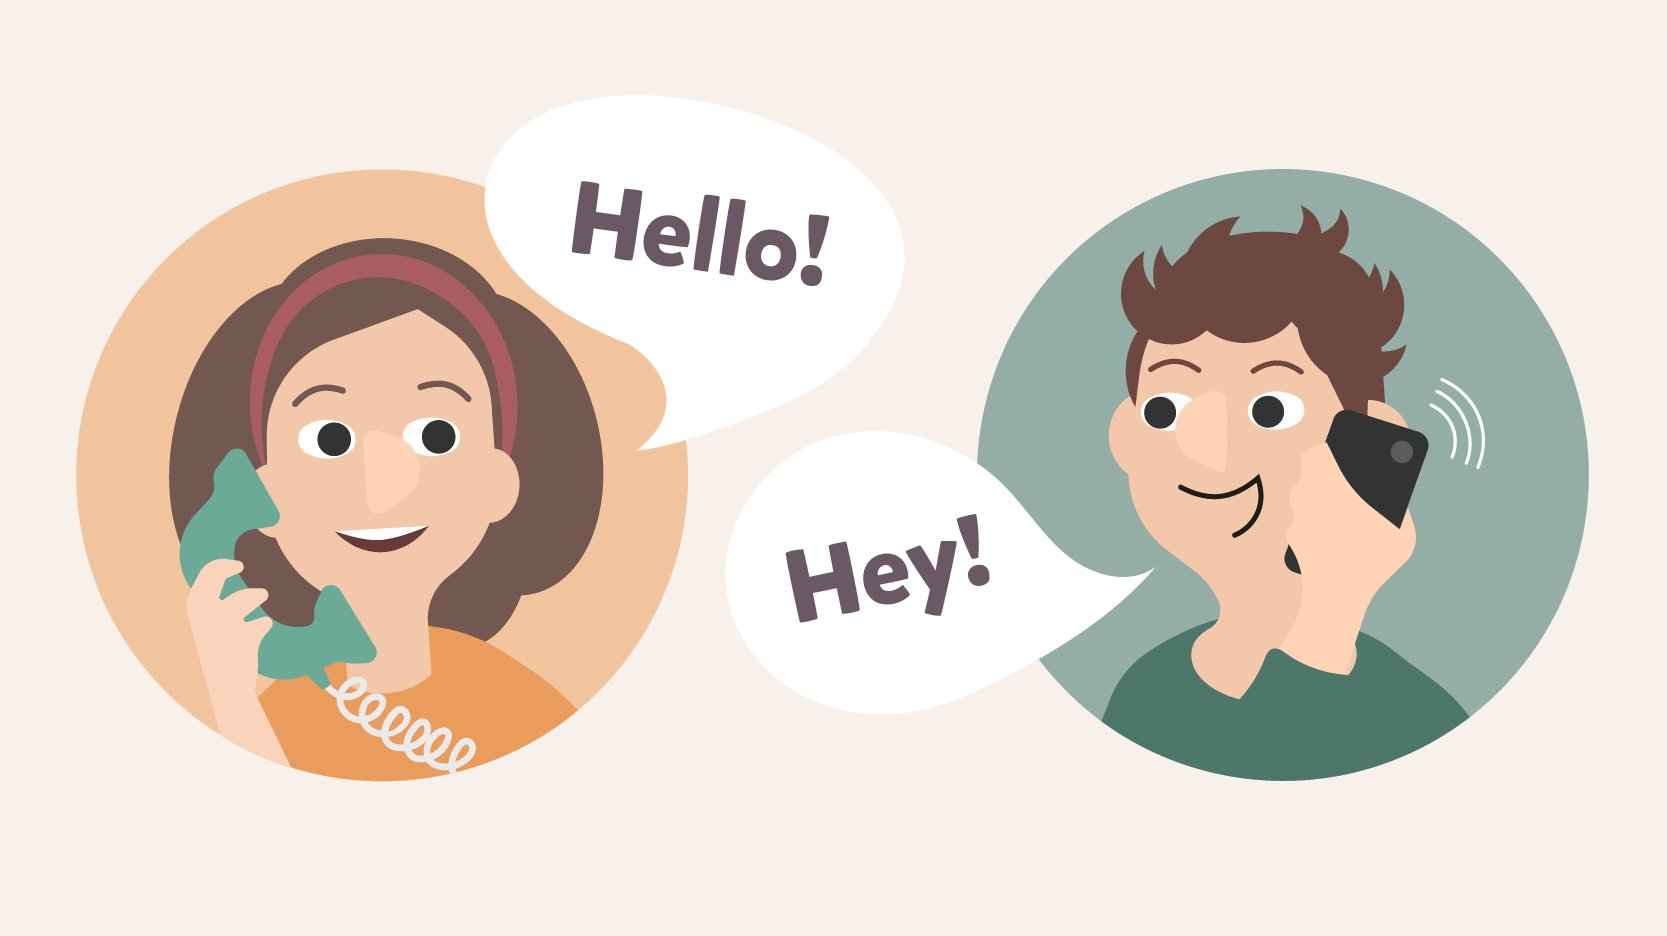 Learn how to say hello!